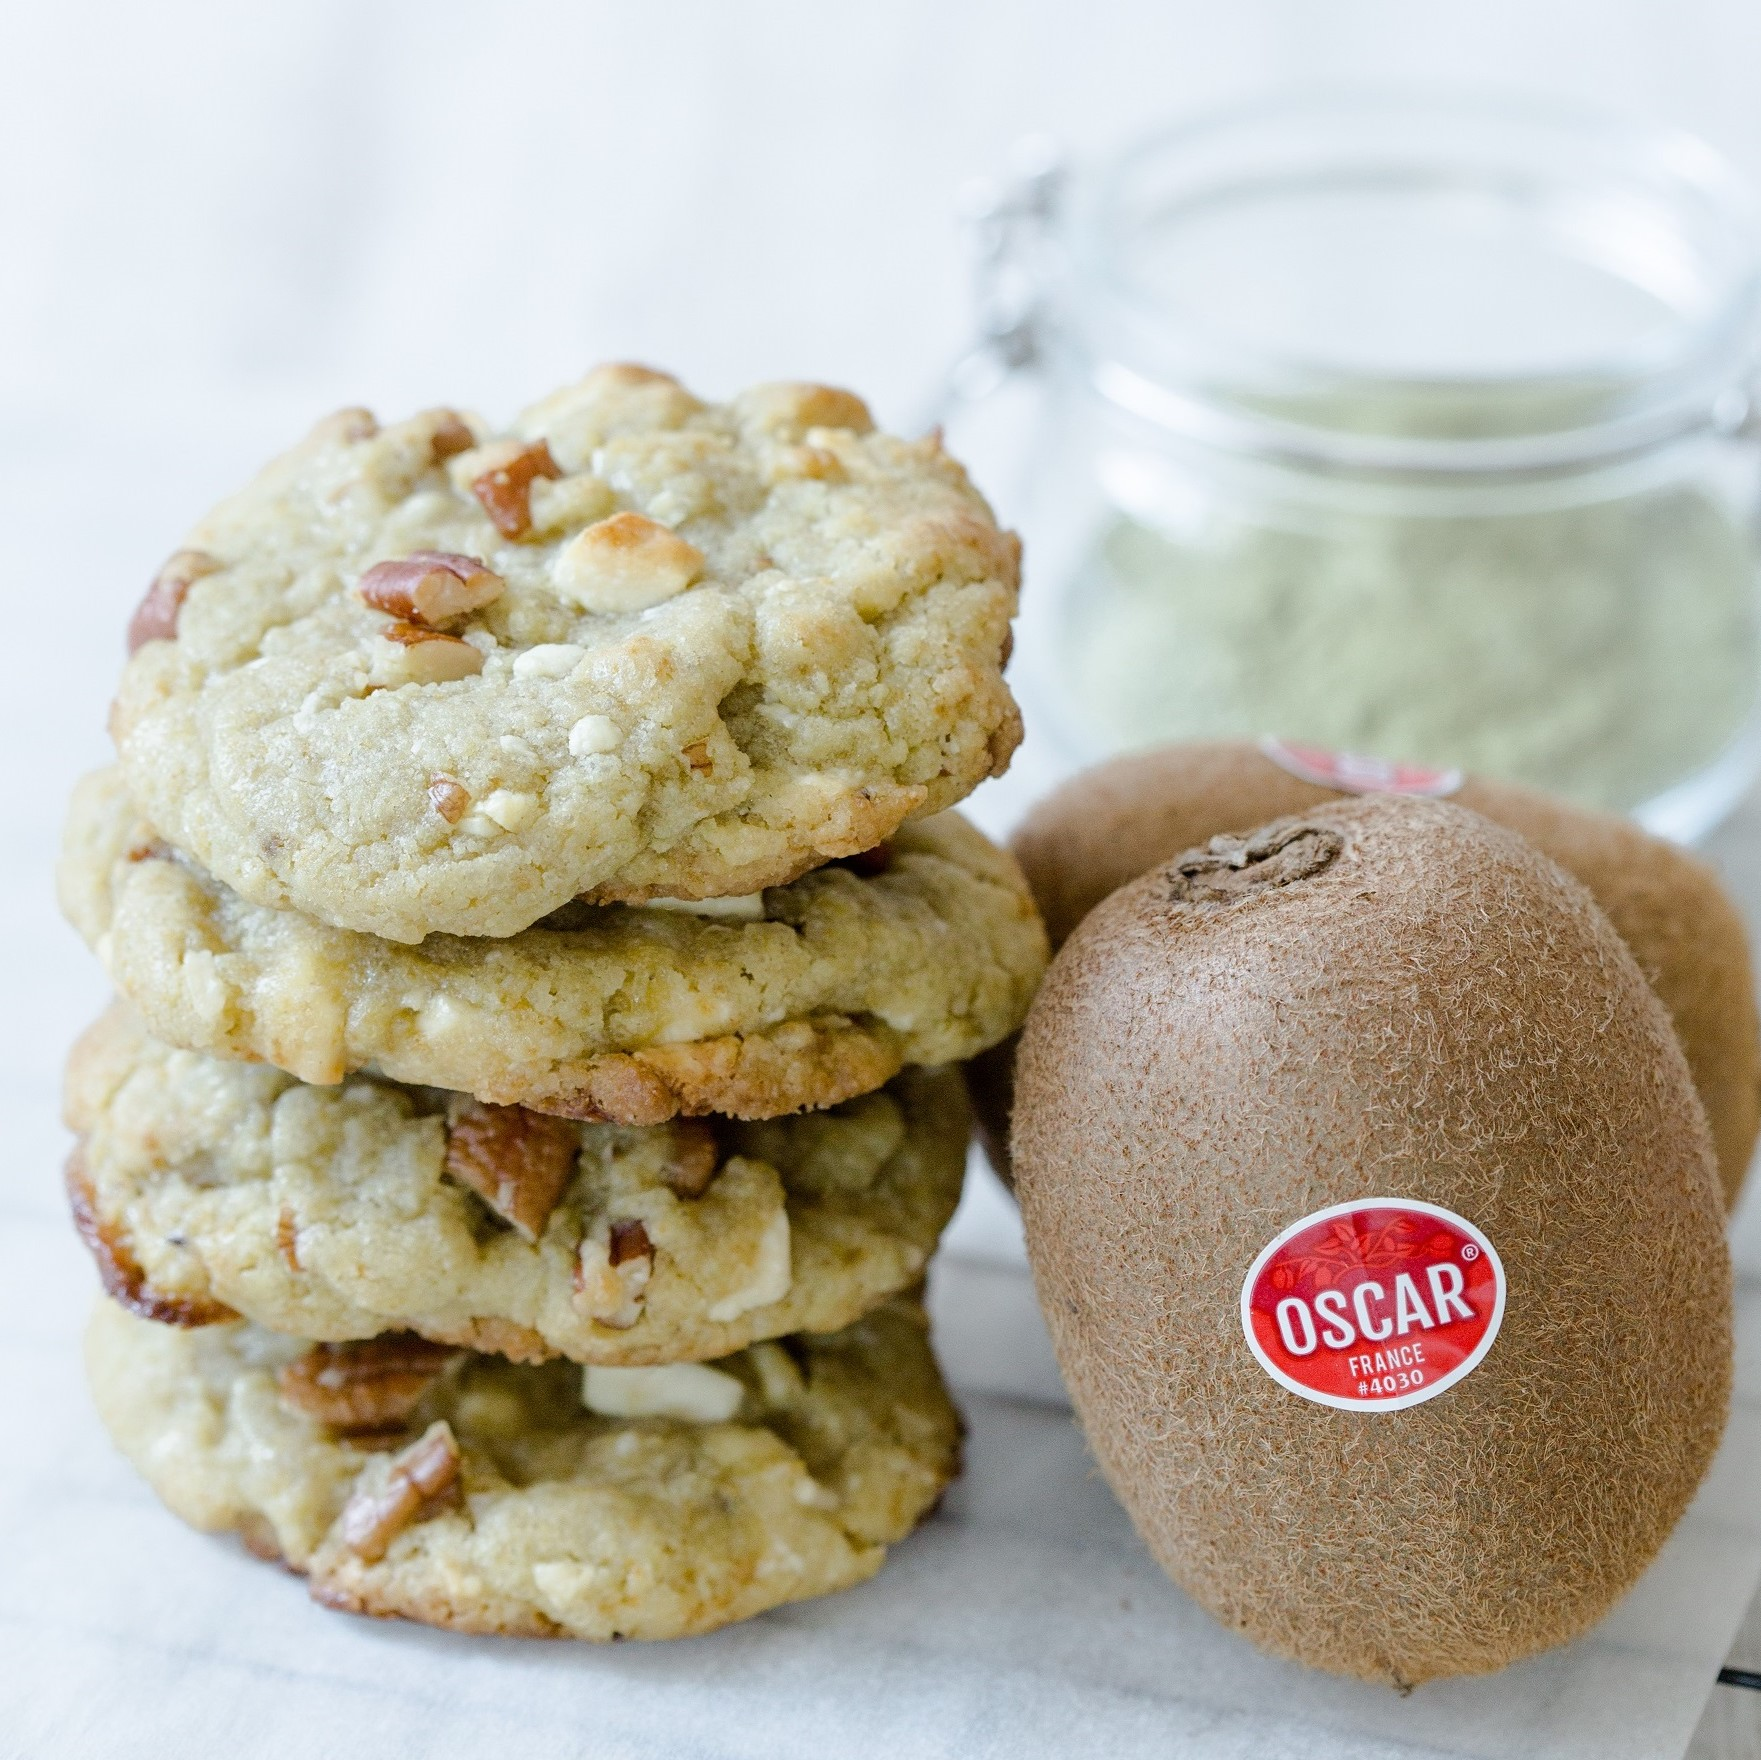 Matcha cookies with Oscar® kiwi fruits